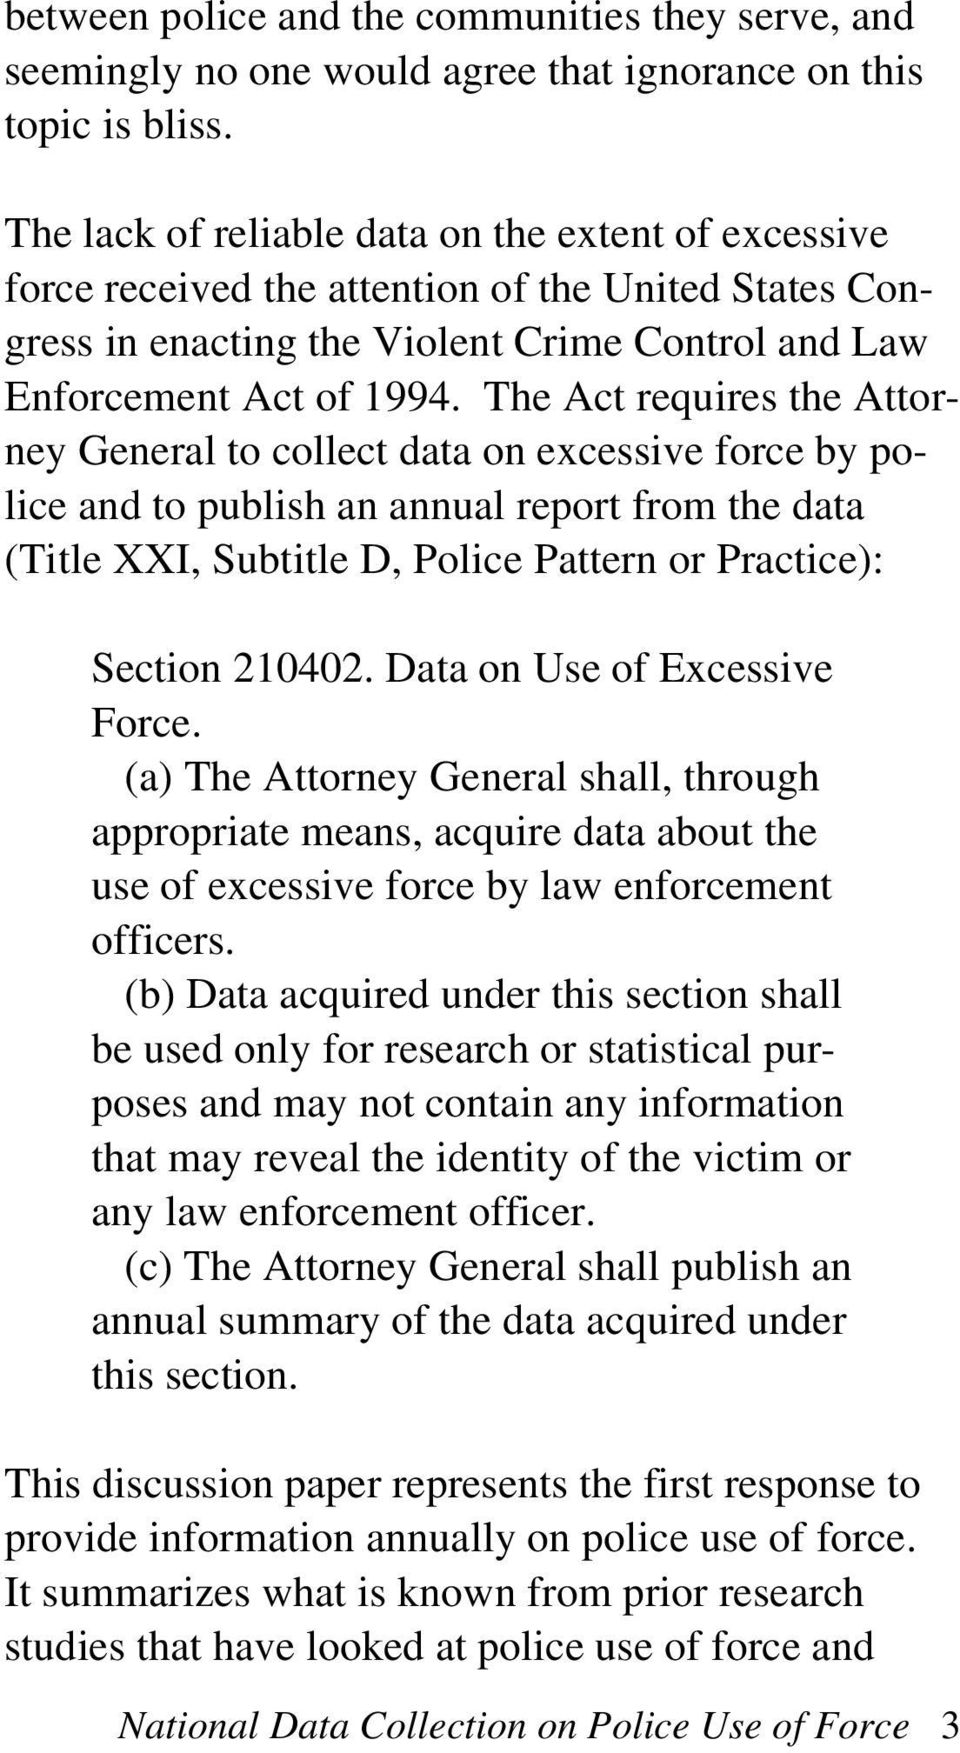 The Act requires the Attorney General to collect data on excessive force by police and to publish an annual report from the data (Title XXI, Subtitle D, Police Pattern or Practice): Section 210402.